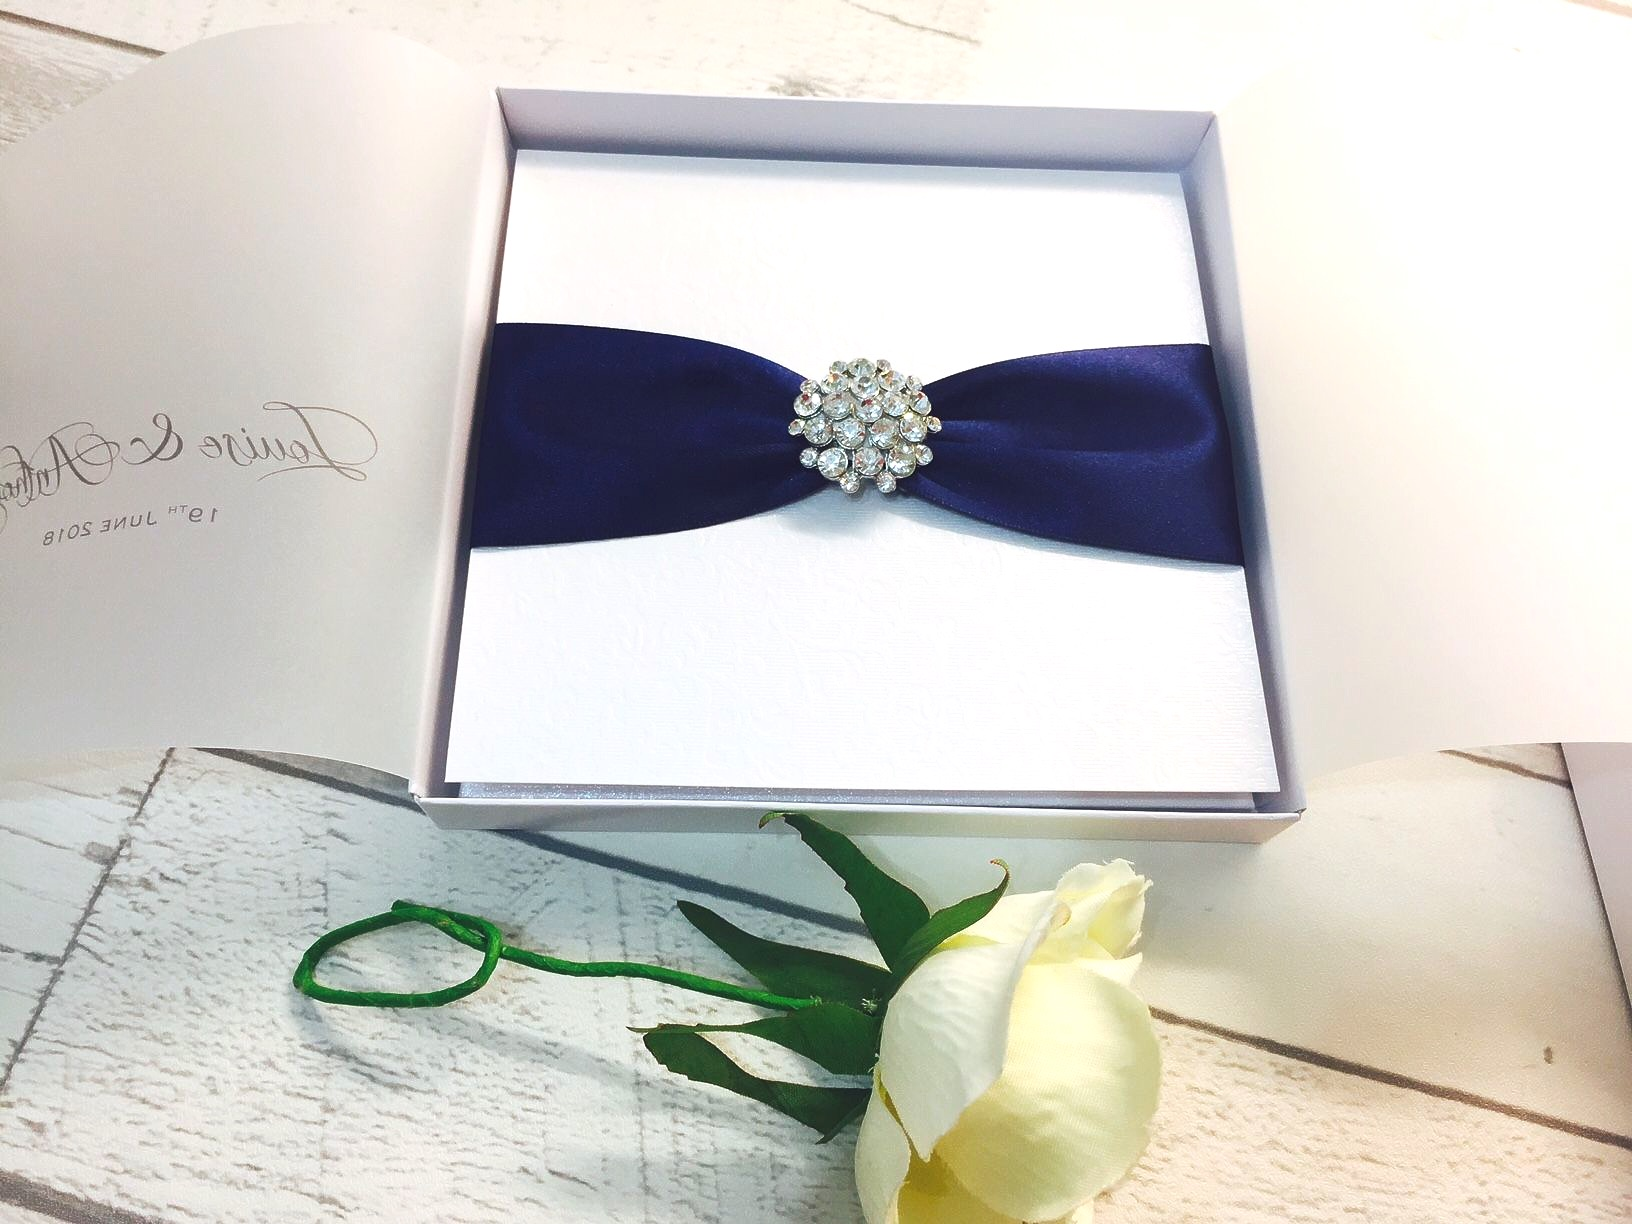 Boxed crystal wedding invitations with beautiful diamante brooch